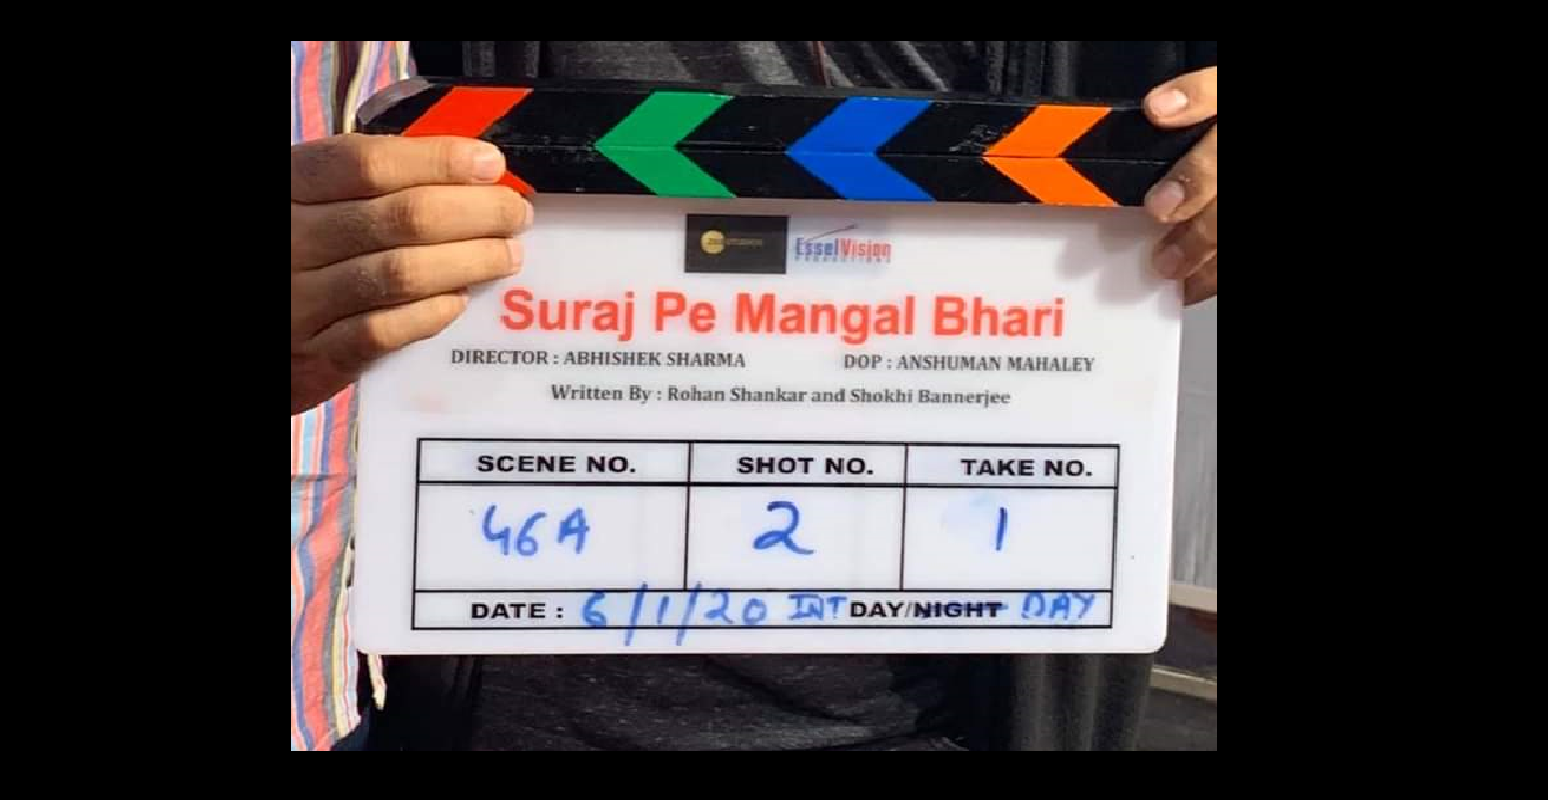 Suraj Pe Mangal Bhaari is directed by Abhishek Sharma and its principal photography began on 6 January 2020. Photo Courtesy: Zee Studios/ Twitter